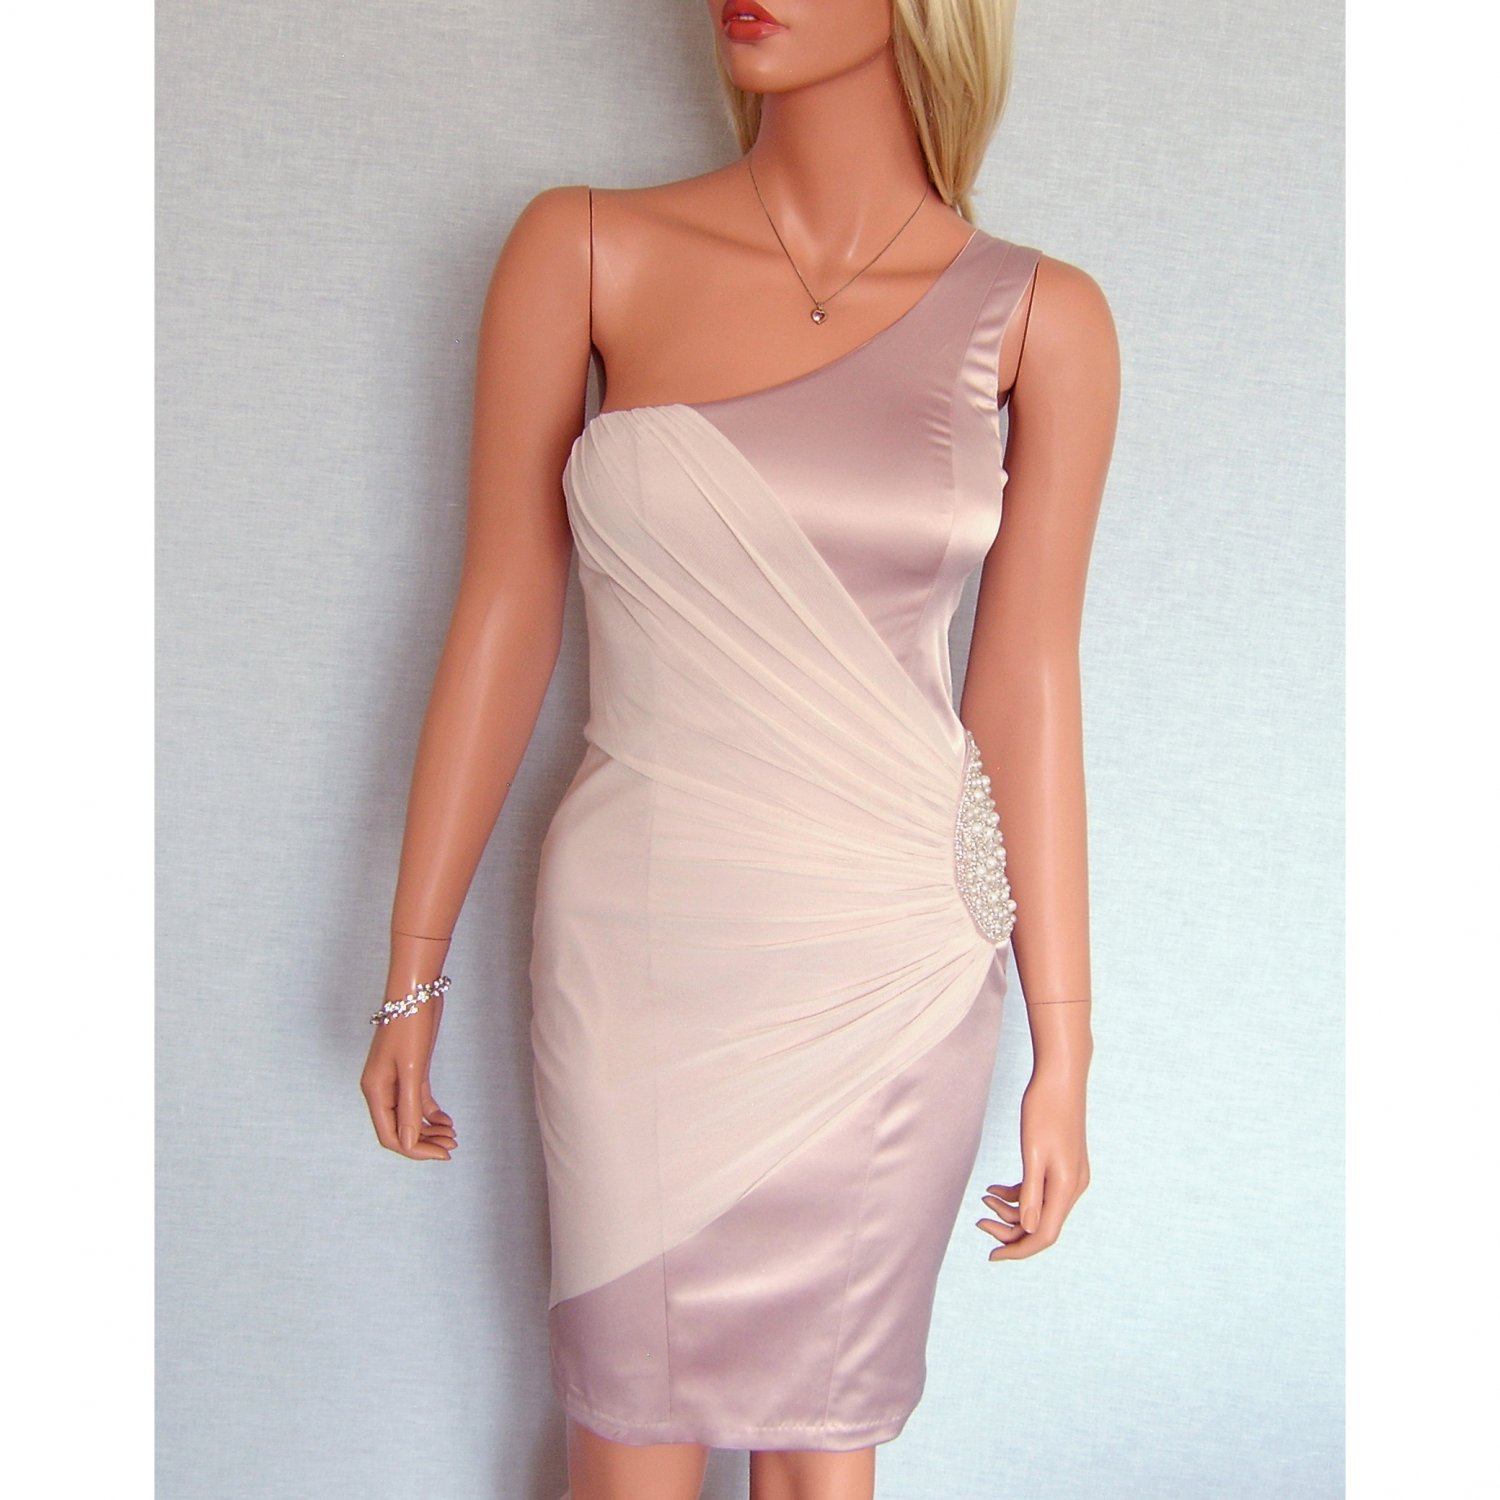 ELISE RYAN TOPSHOP PINK PEARL BEADED EVENING BODYCON MINI COCKTAIL PARTY PROM DRESS UK 14, US 10